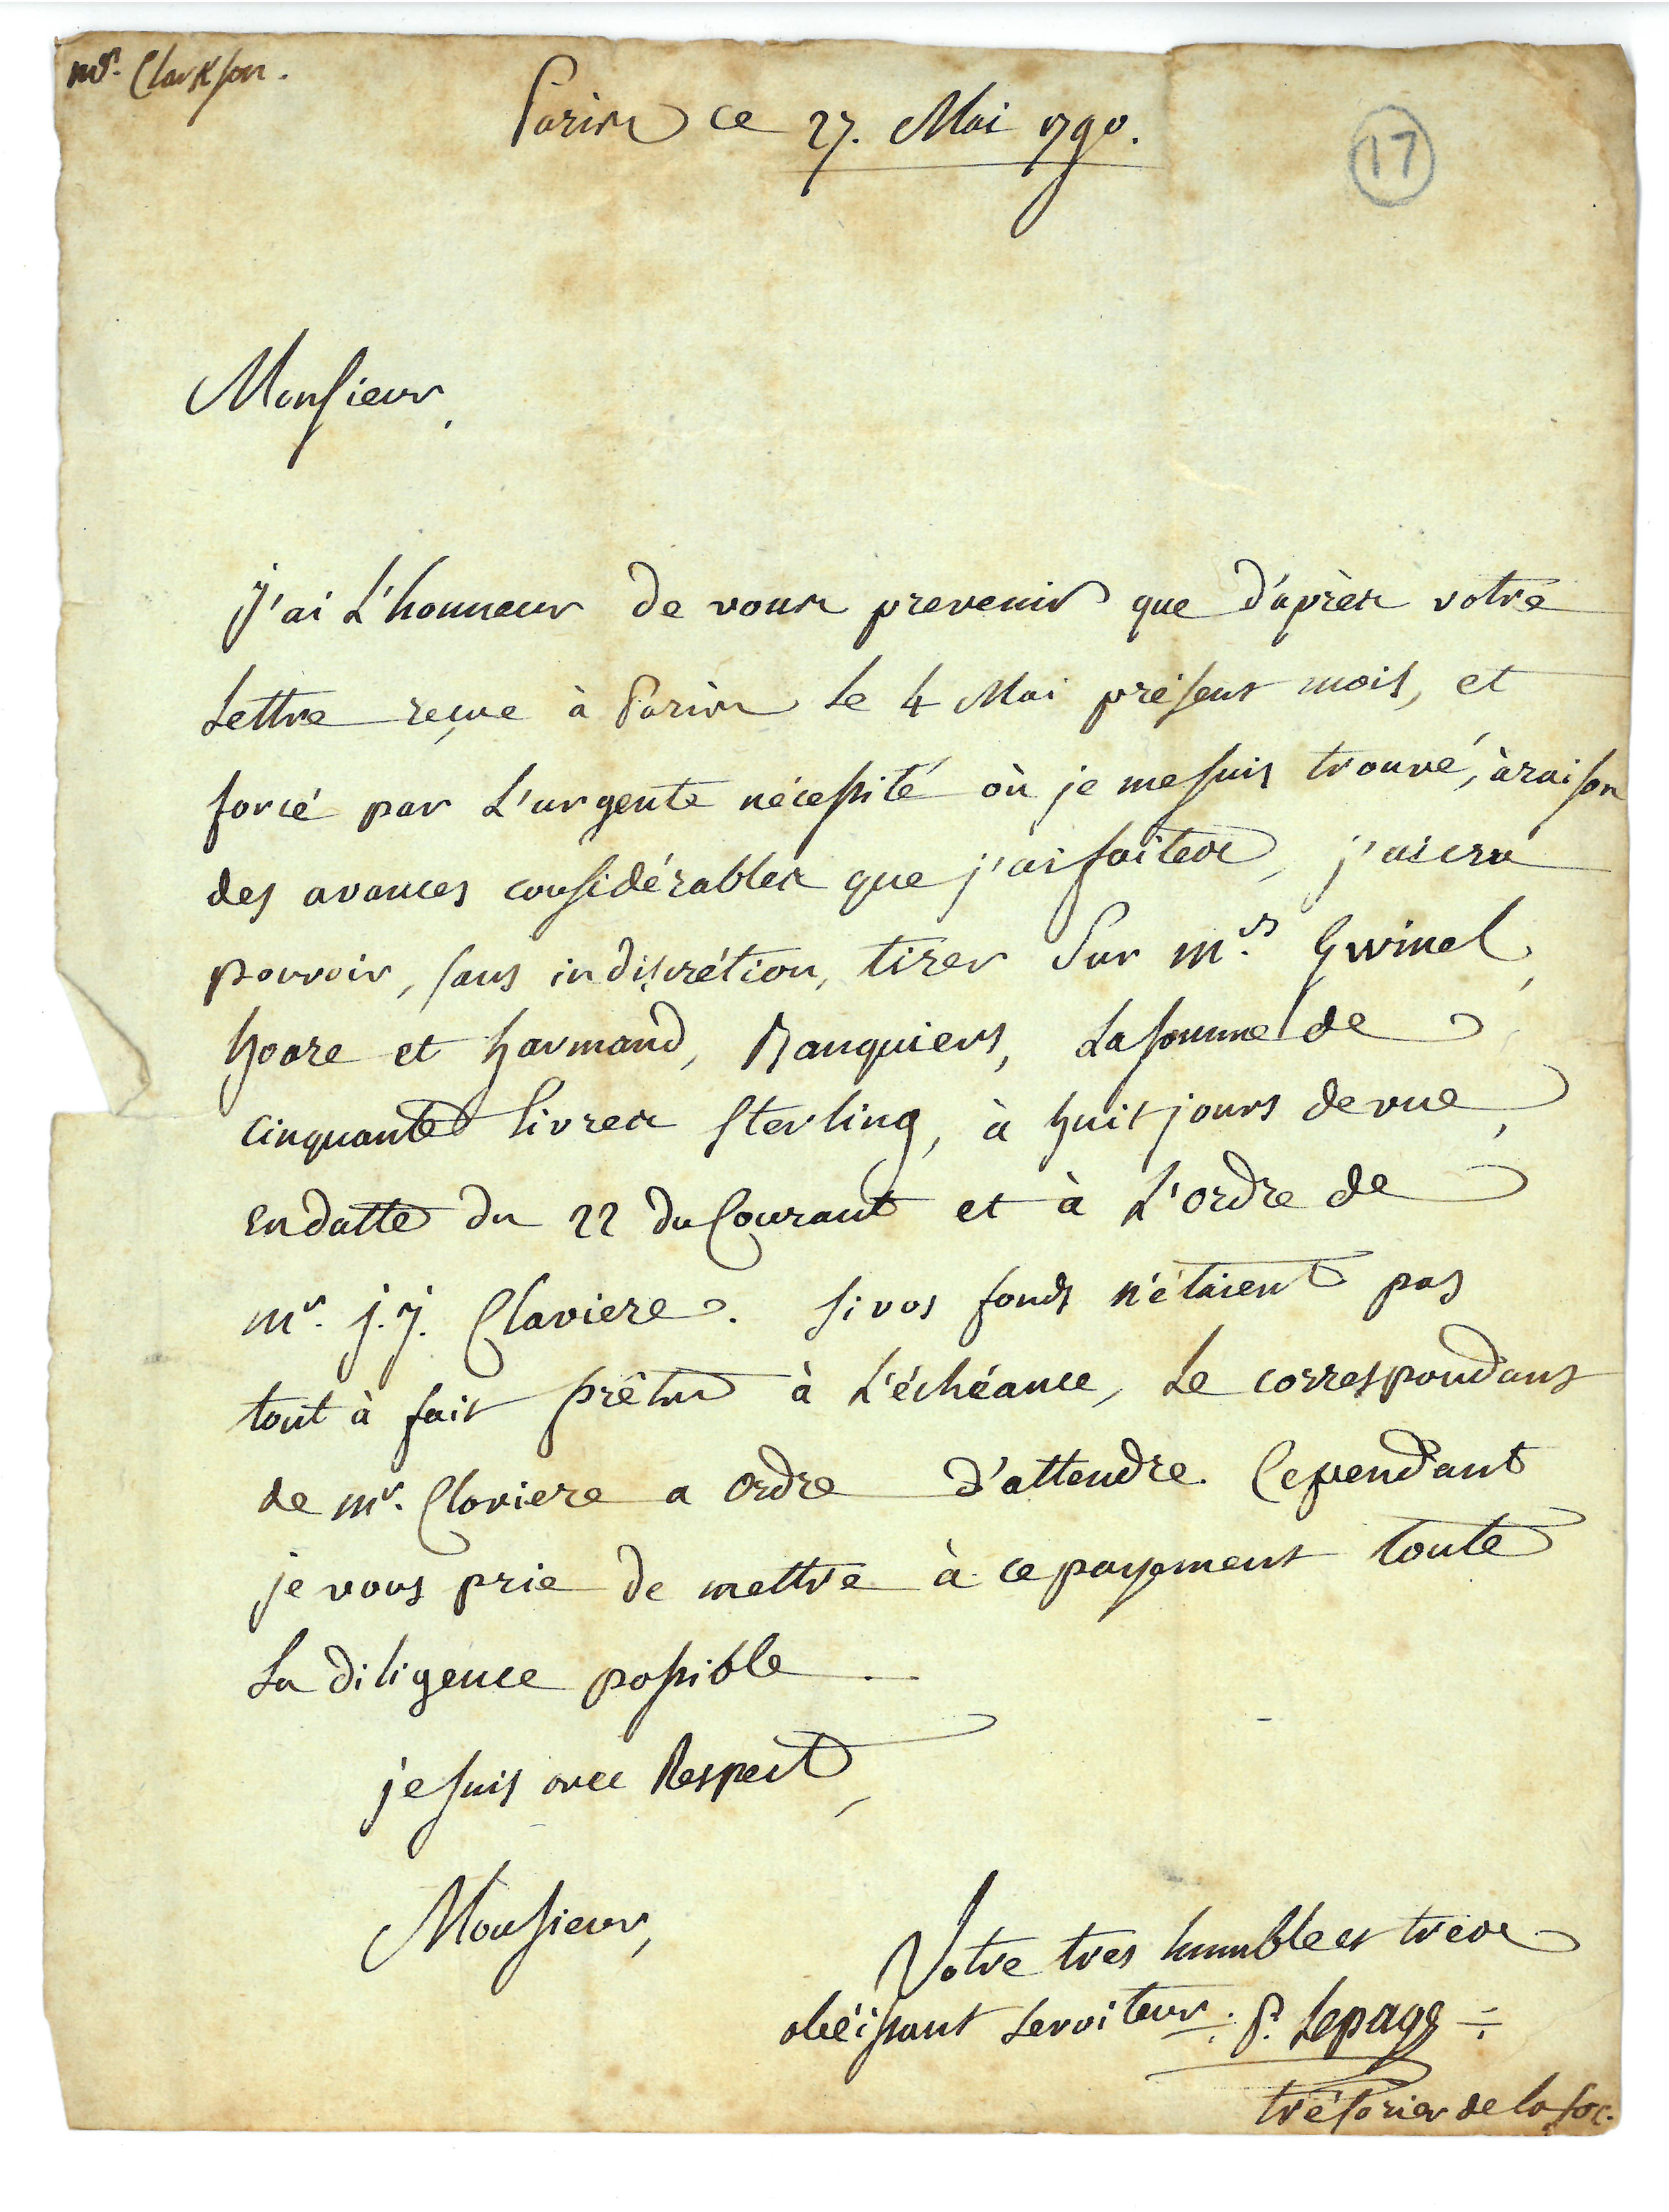 A signed letter, written in French, from P. Lepage, Treasurer of the Societe des Amis des Noirs, to Thomas Clarkson. Paris, 27 May 1790. St. John's College Library, Cambridge. Doc 17